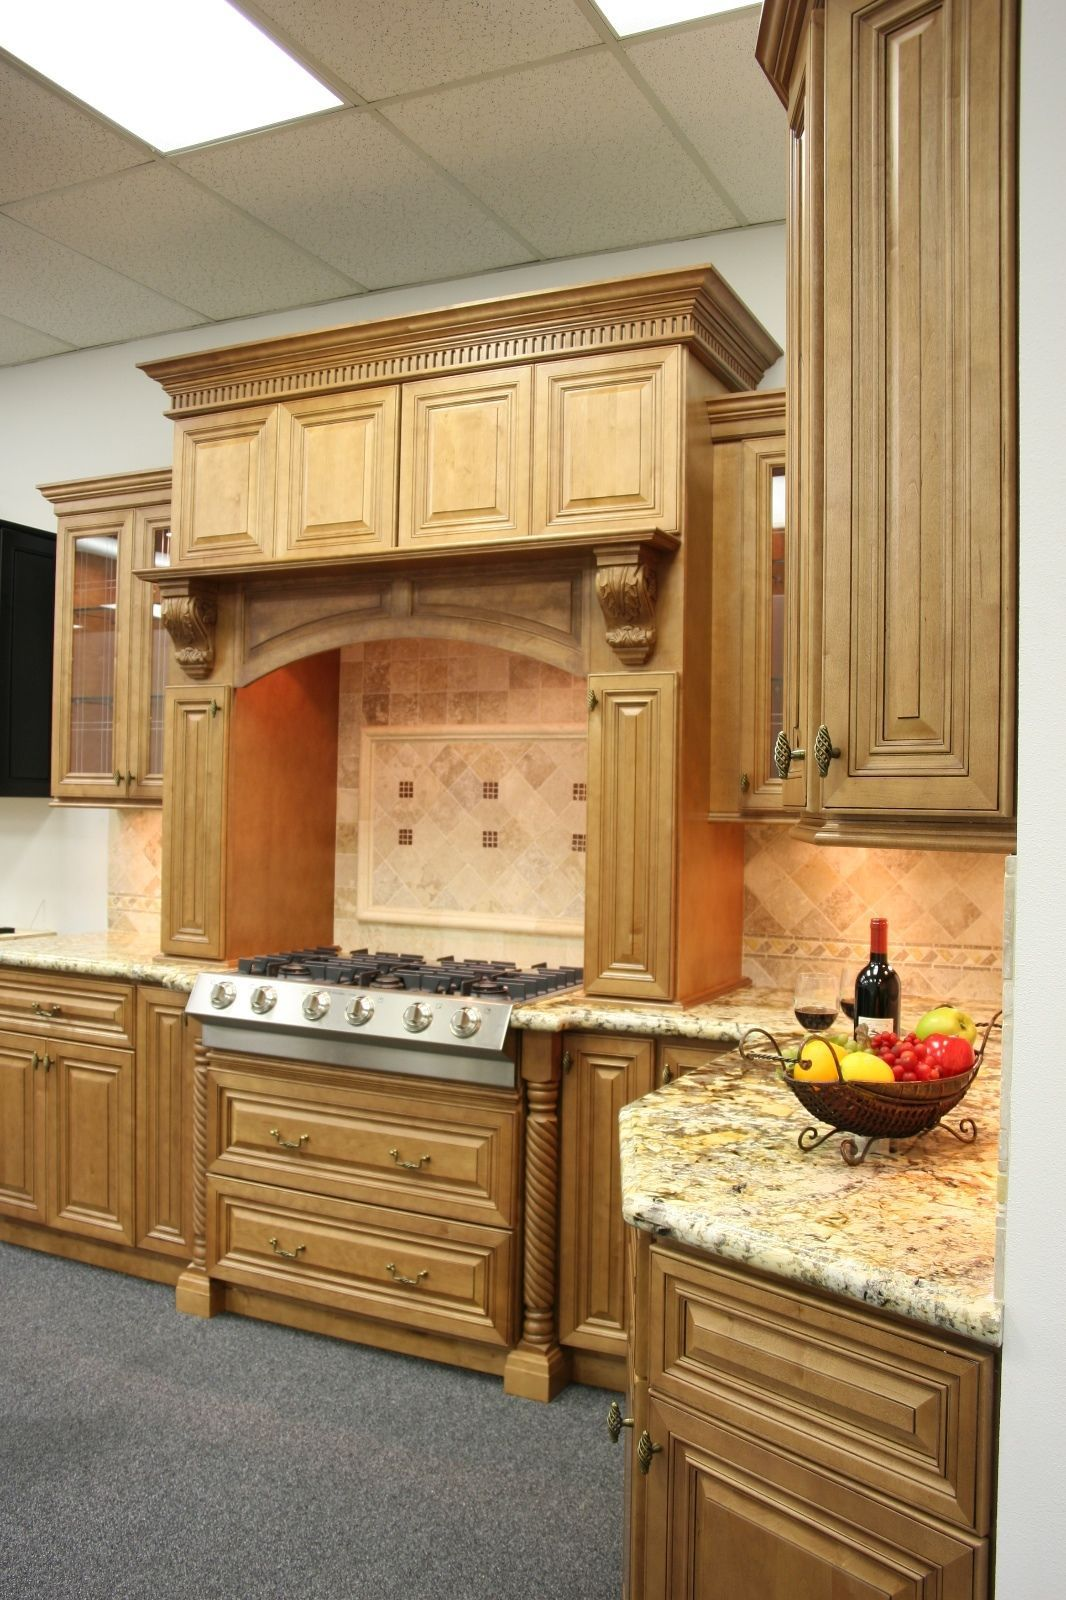 Details about 1001 NOW Kitchen Cabinets Cinnamon Maple Glazed Collection Solid Wood is part of Hanging cabinet Design -